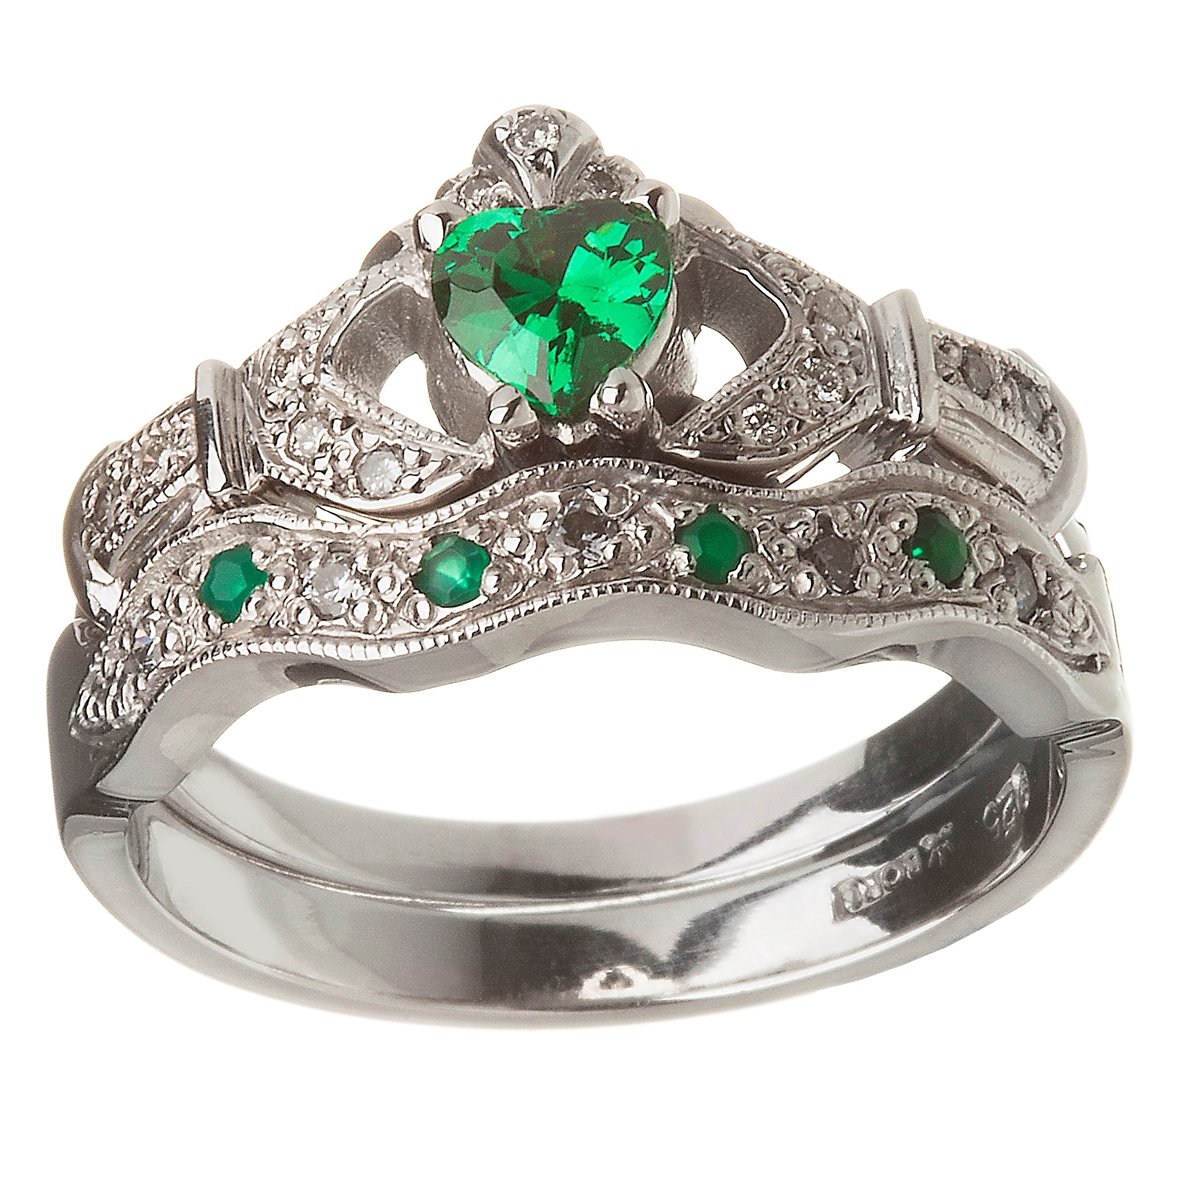 wedding ring engagement green kelsall harriet rings